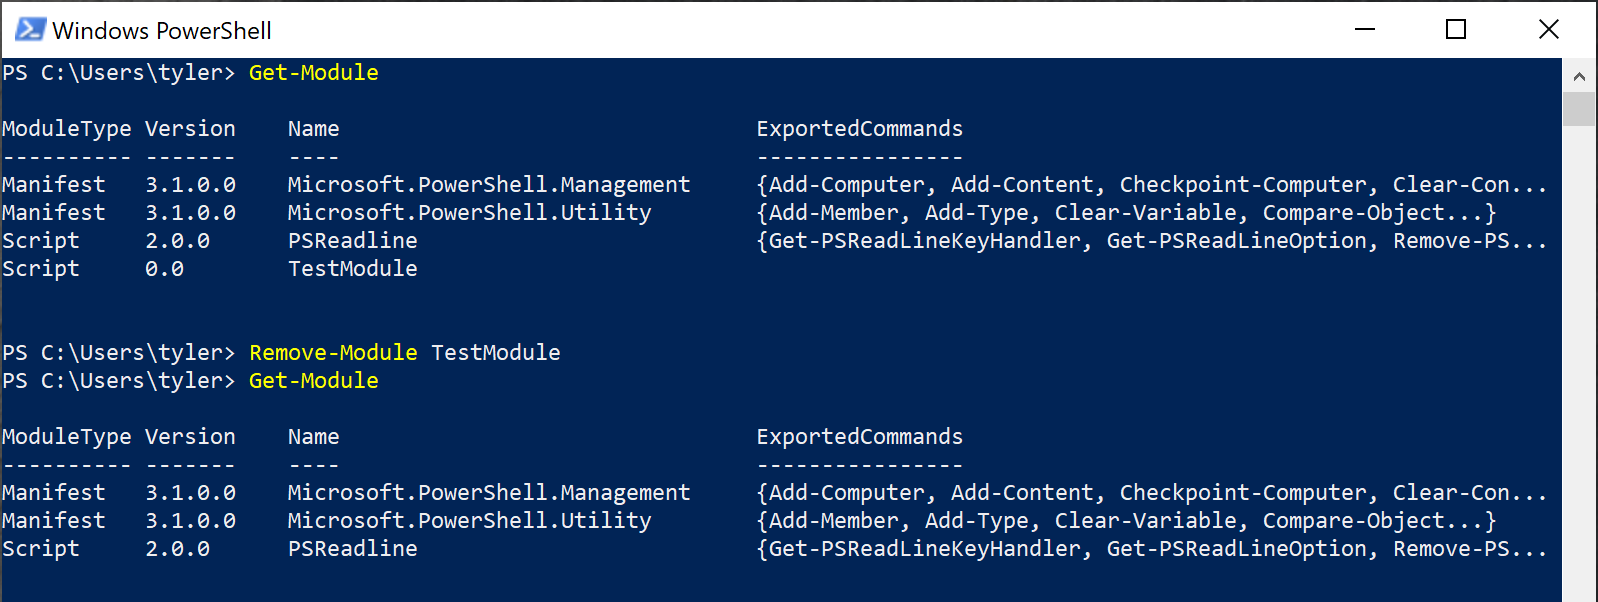 Removing a module from the session